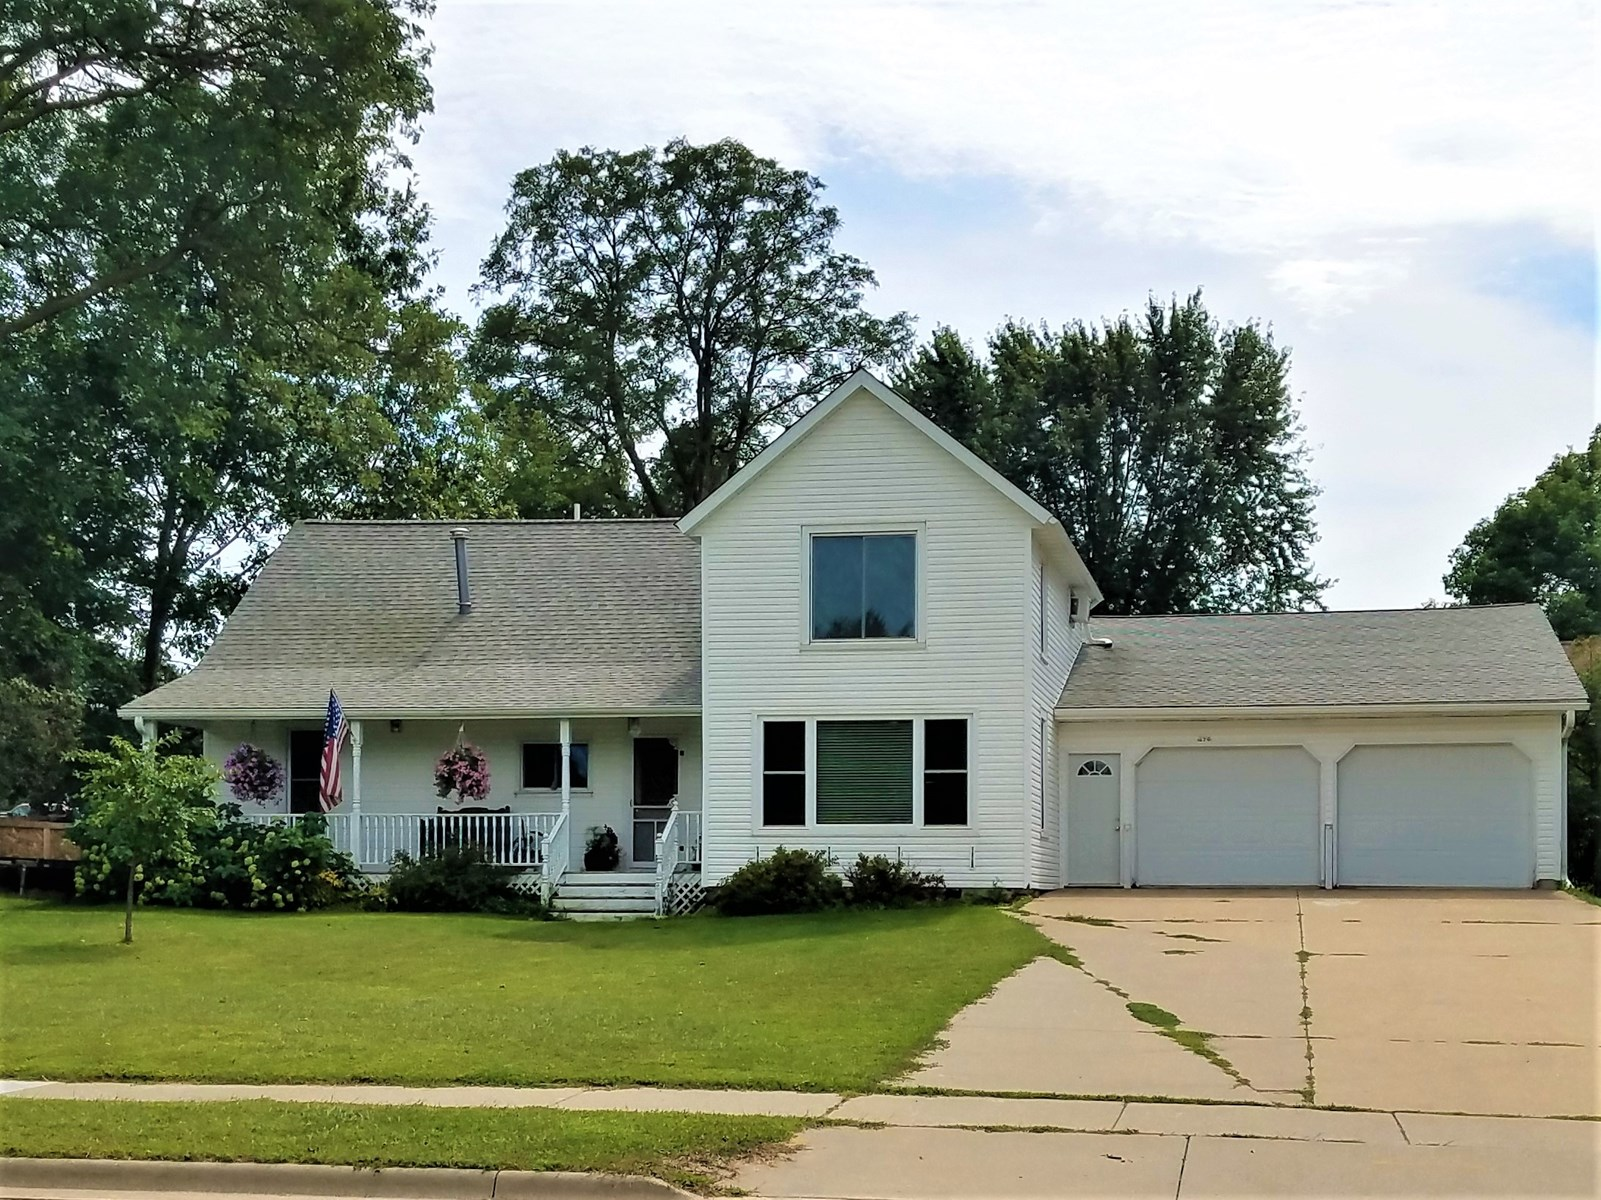 Home for Sale in the City of Manawa, WI